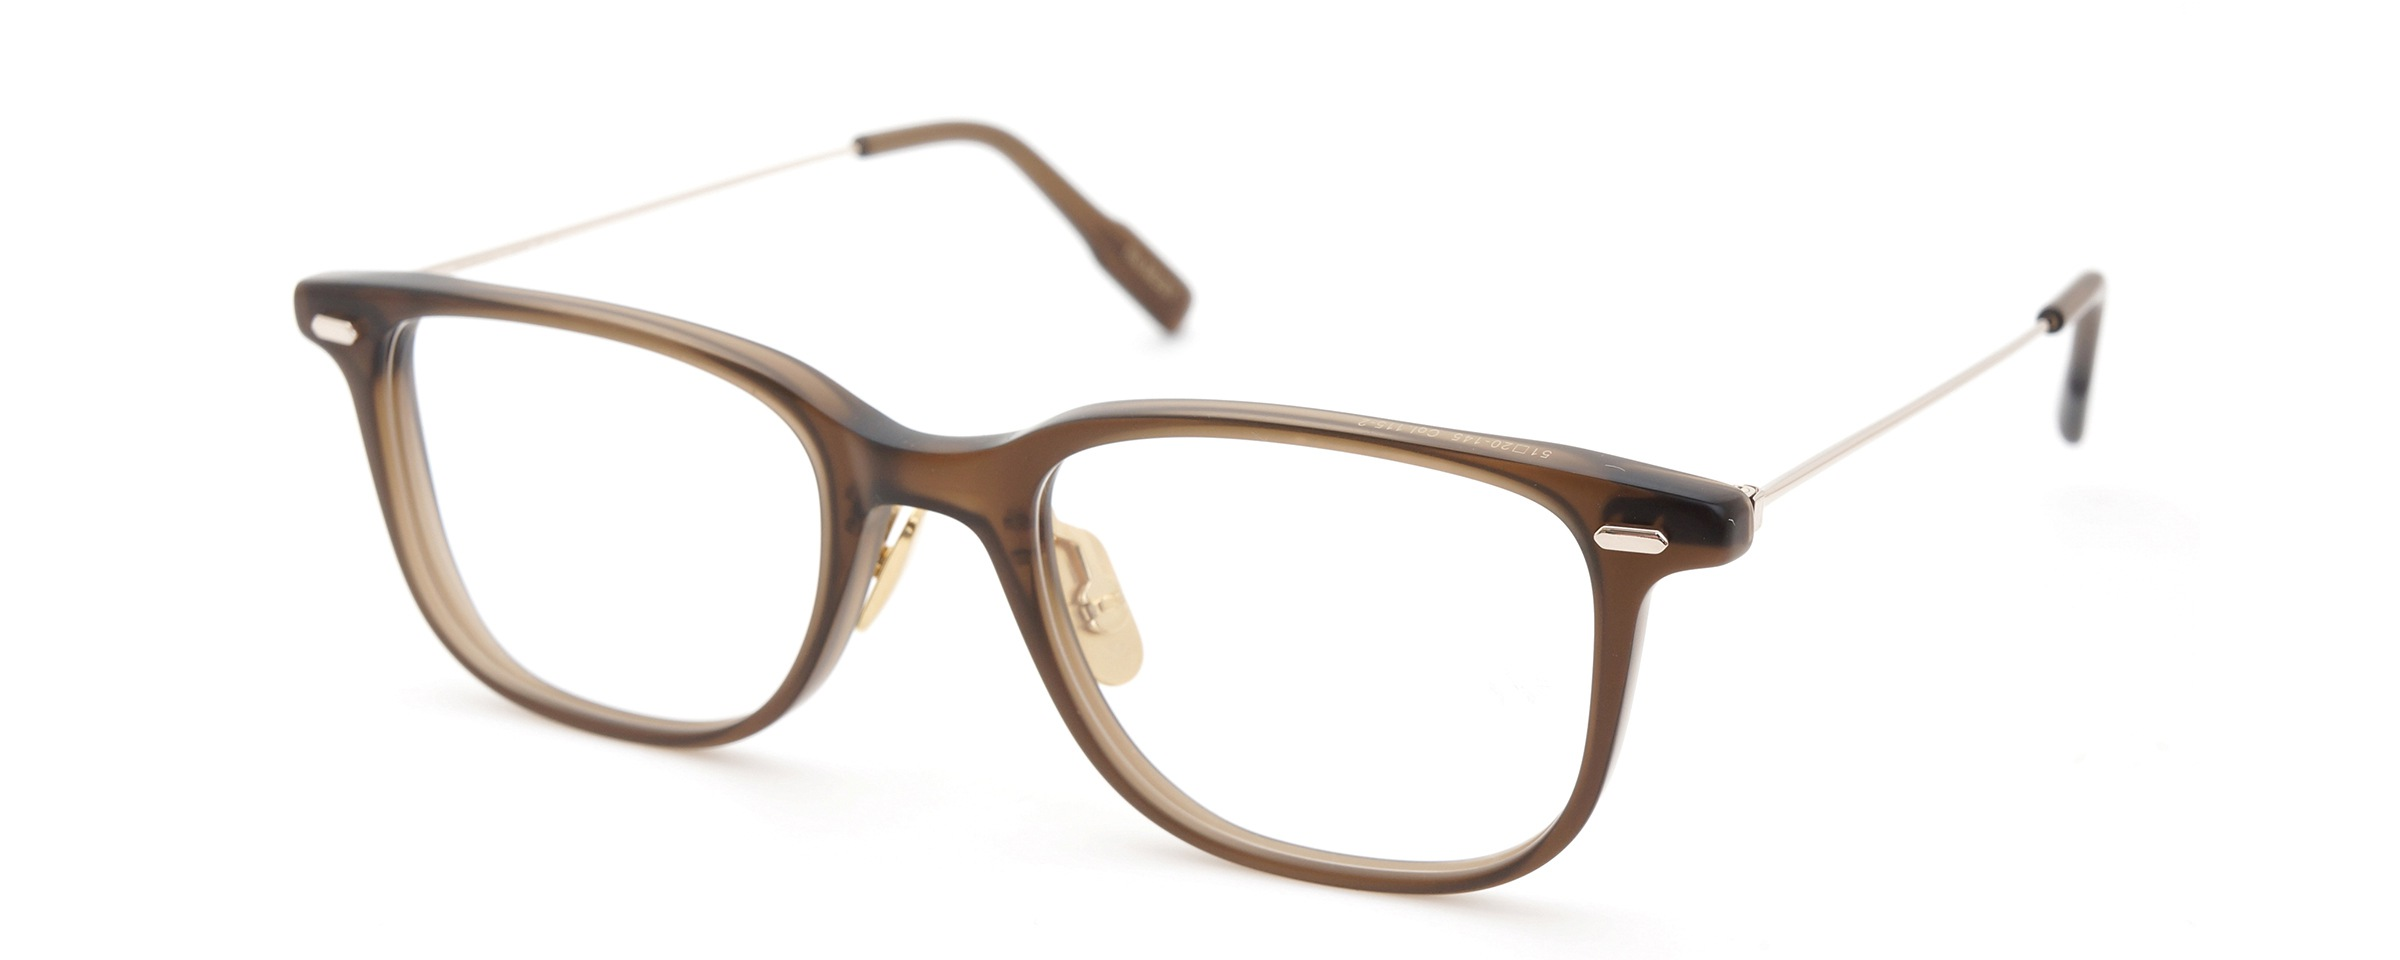 OG × OLIVER GOLDSMITH Re:MUST リ:マスト